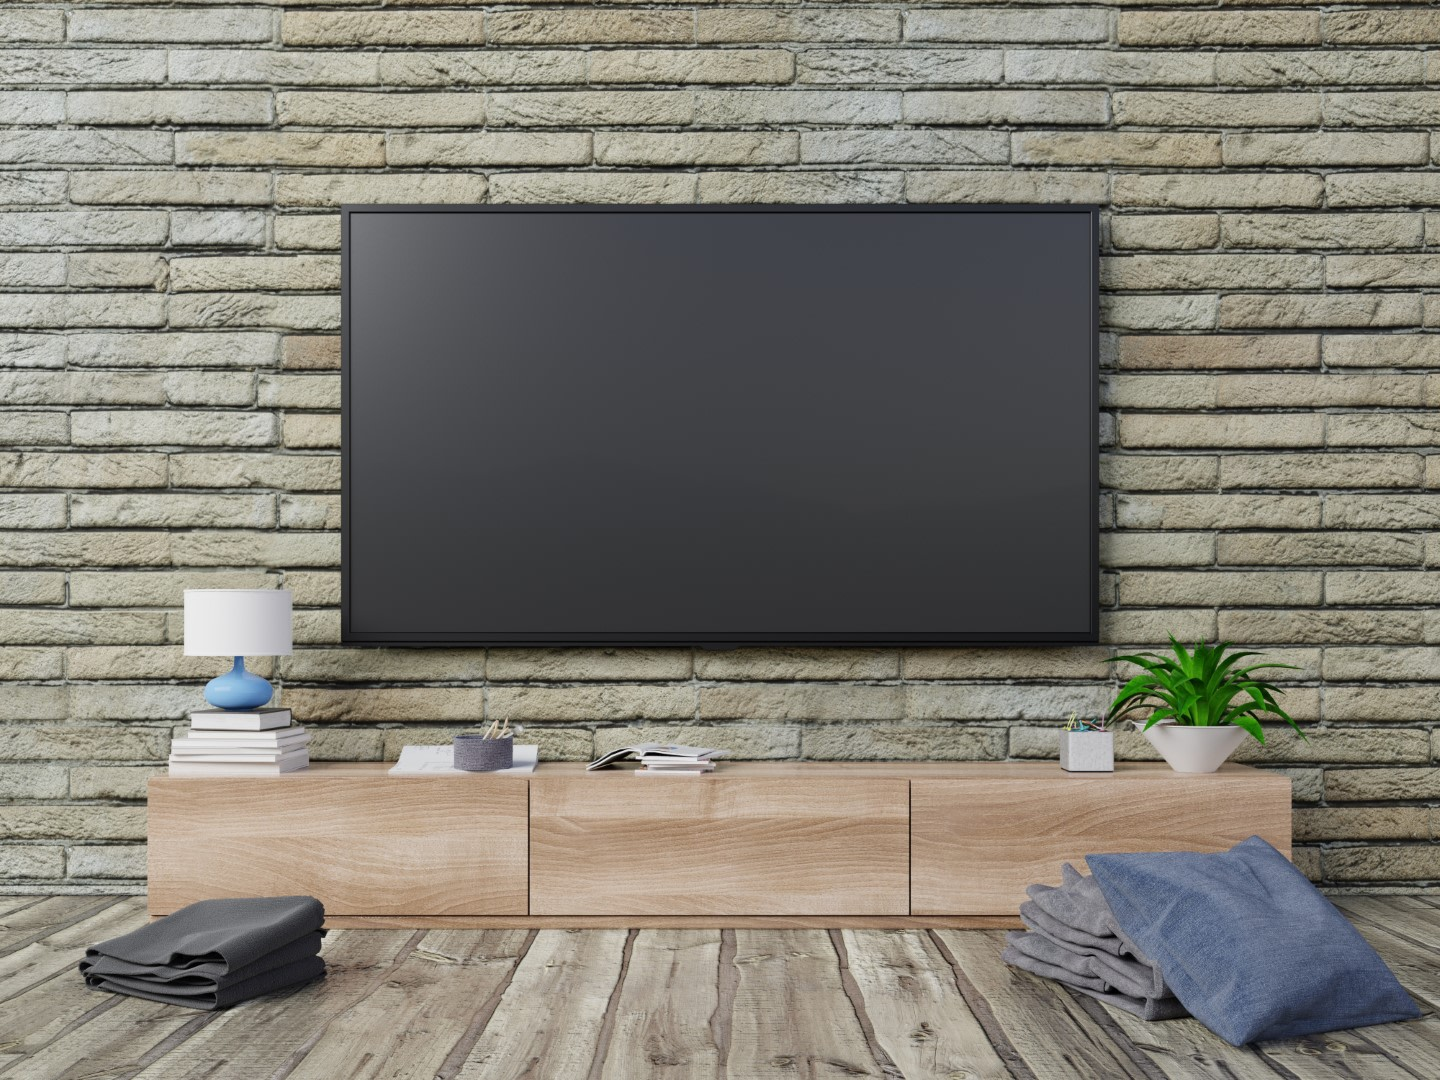 An image related to Best Dolby Vision HDR WebOS Smart TVs